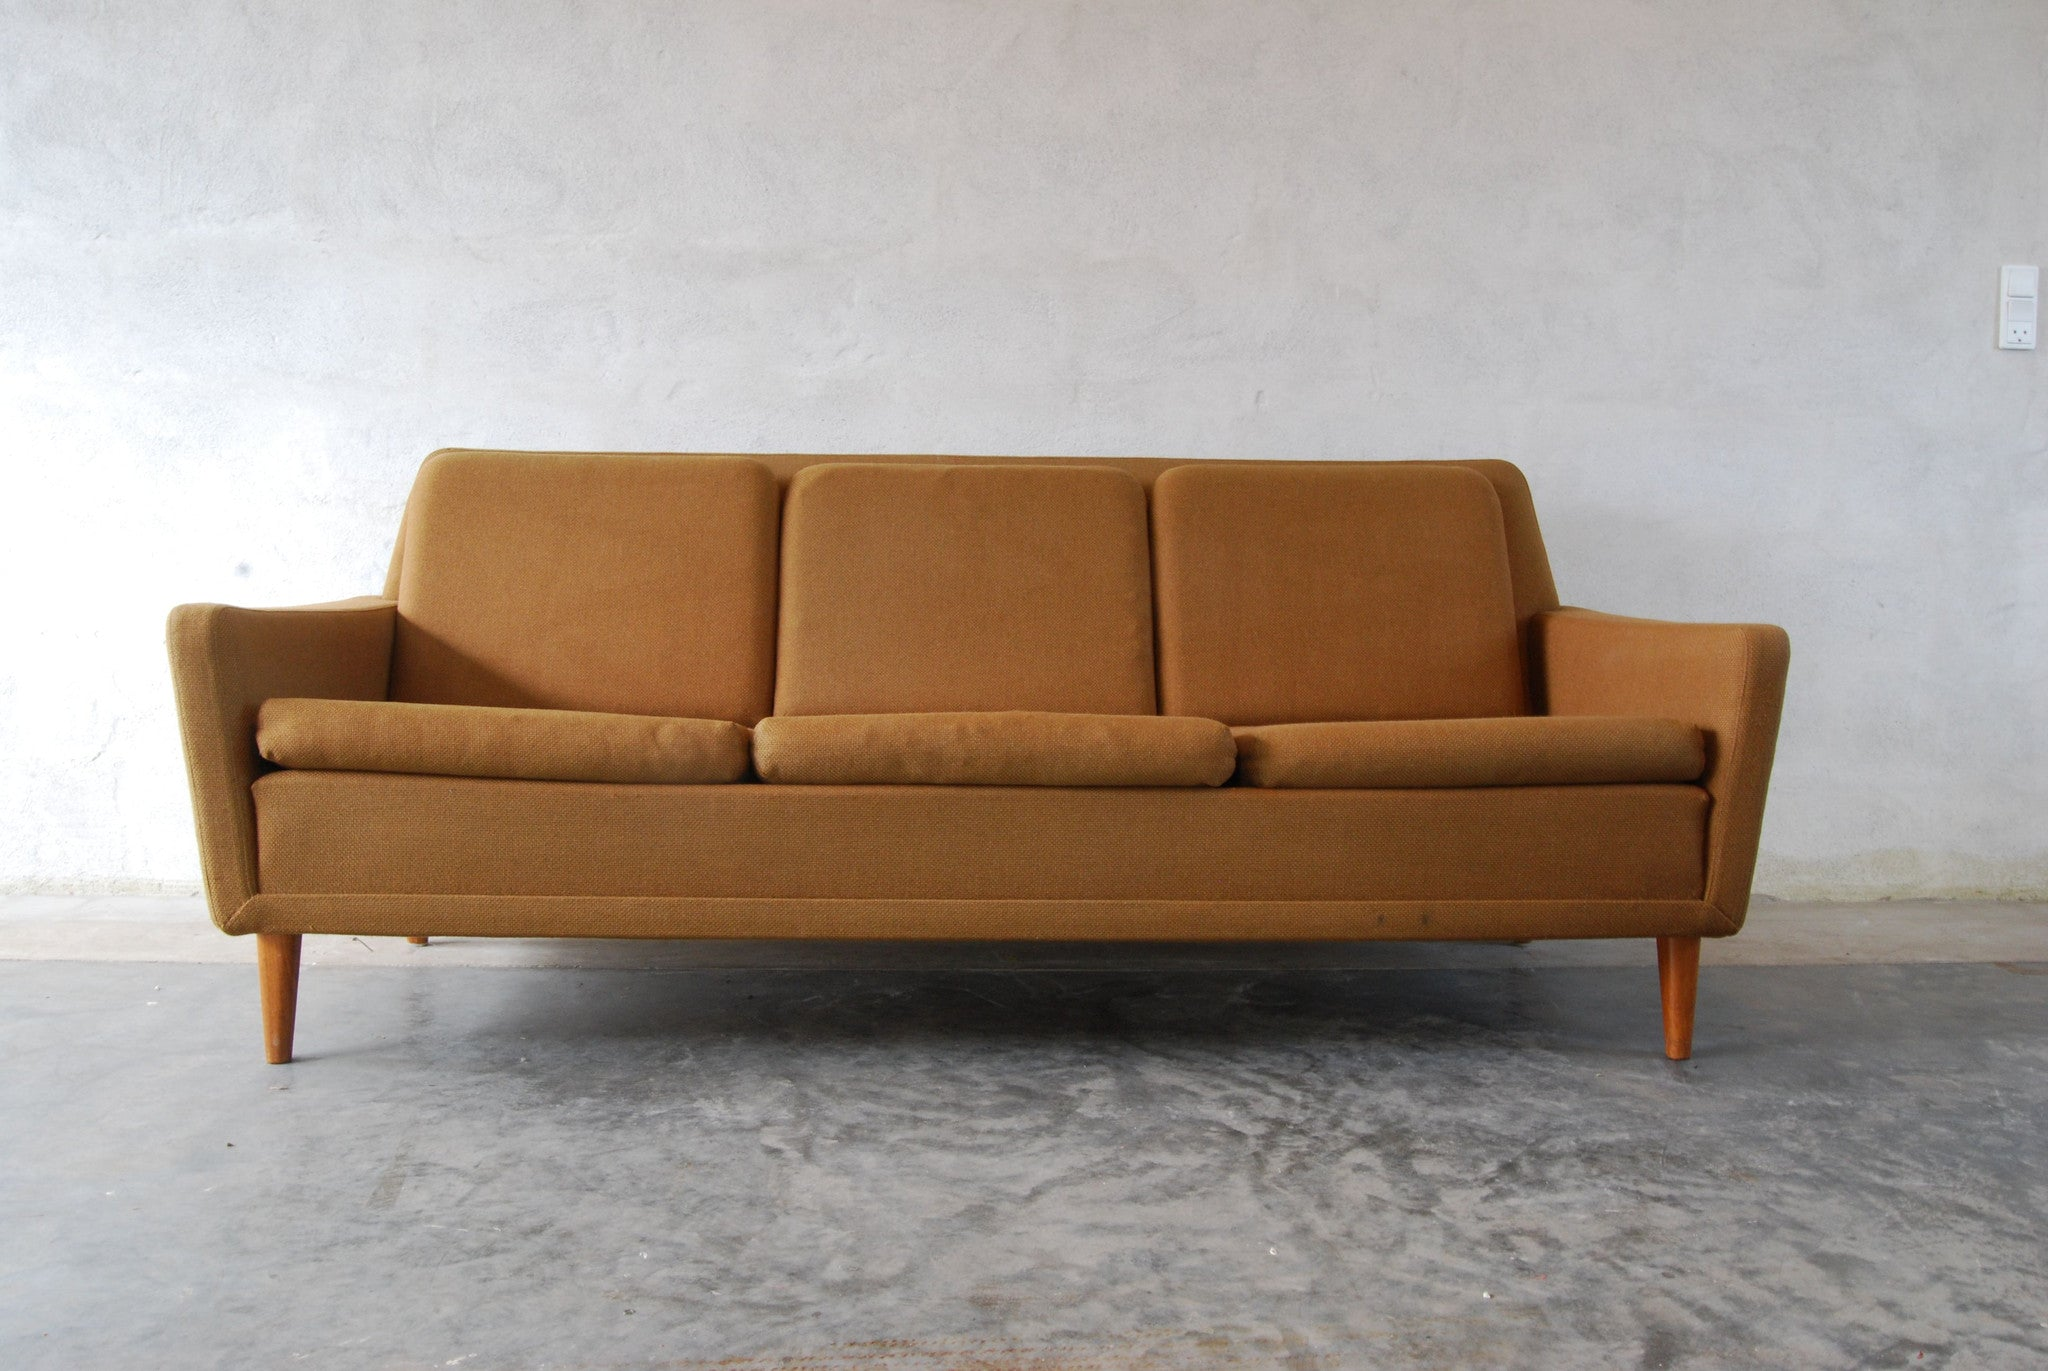 Three seat sofa by DUX no. 2